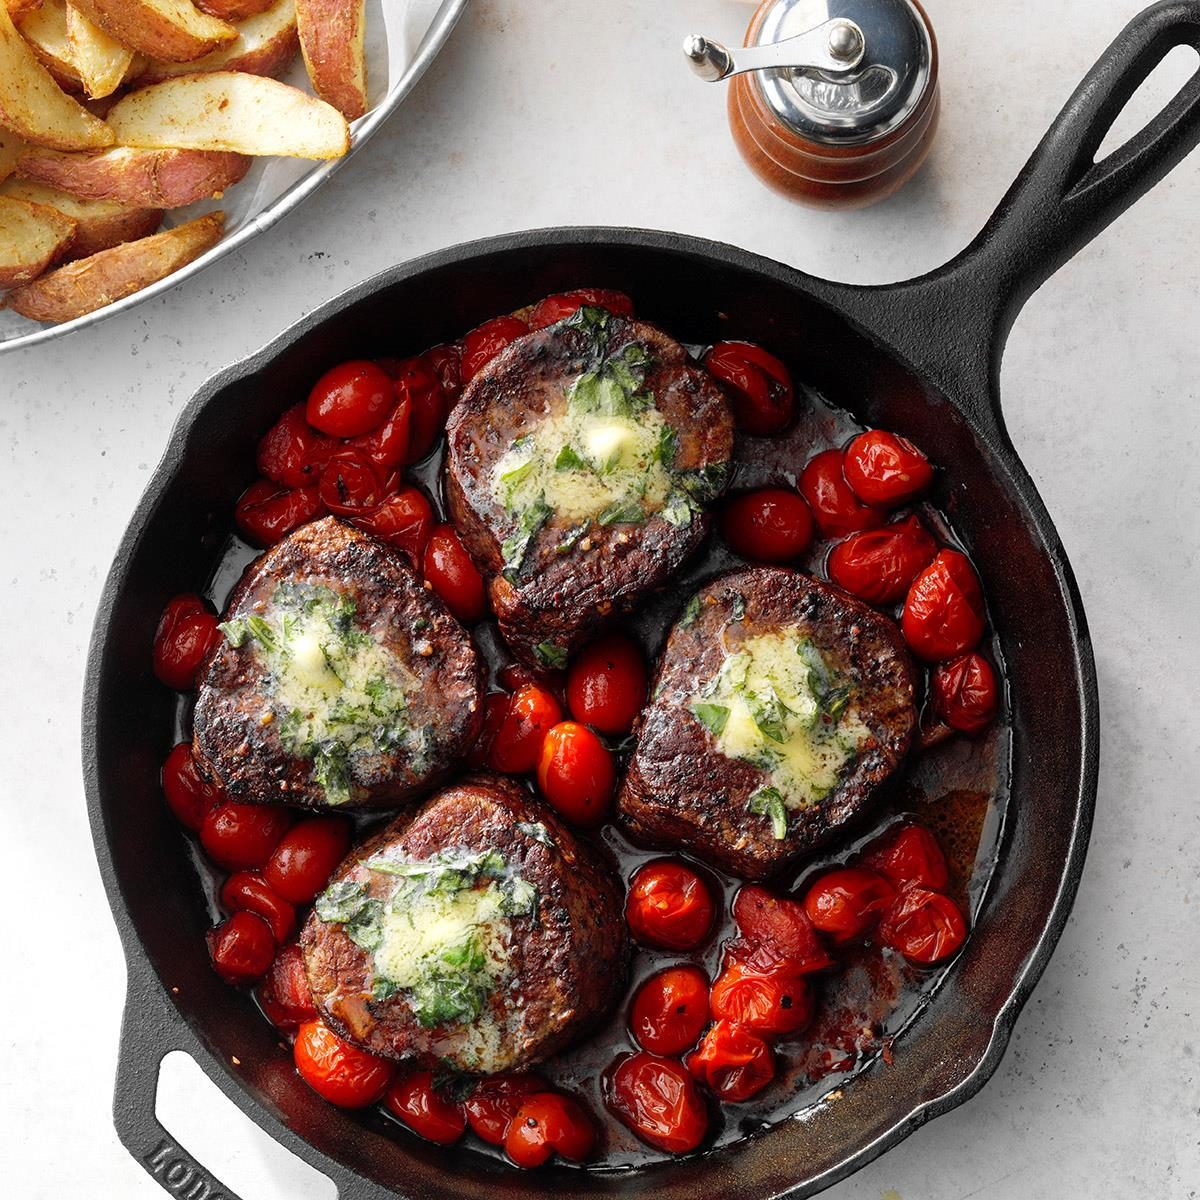 December: Basil-Butter Steaks with Roasted Potatoes